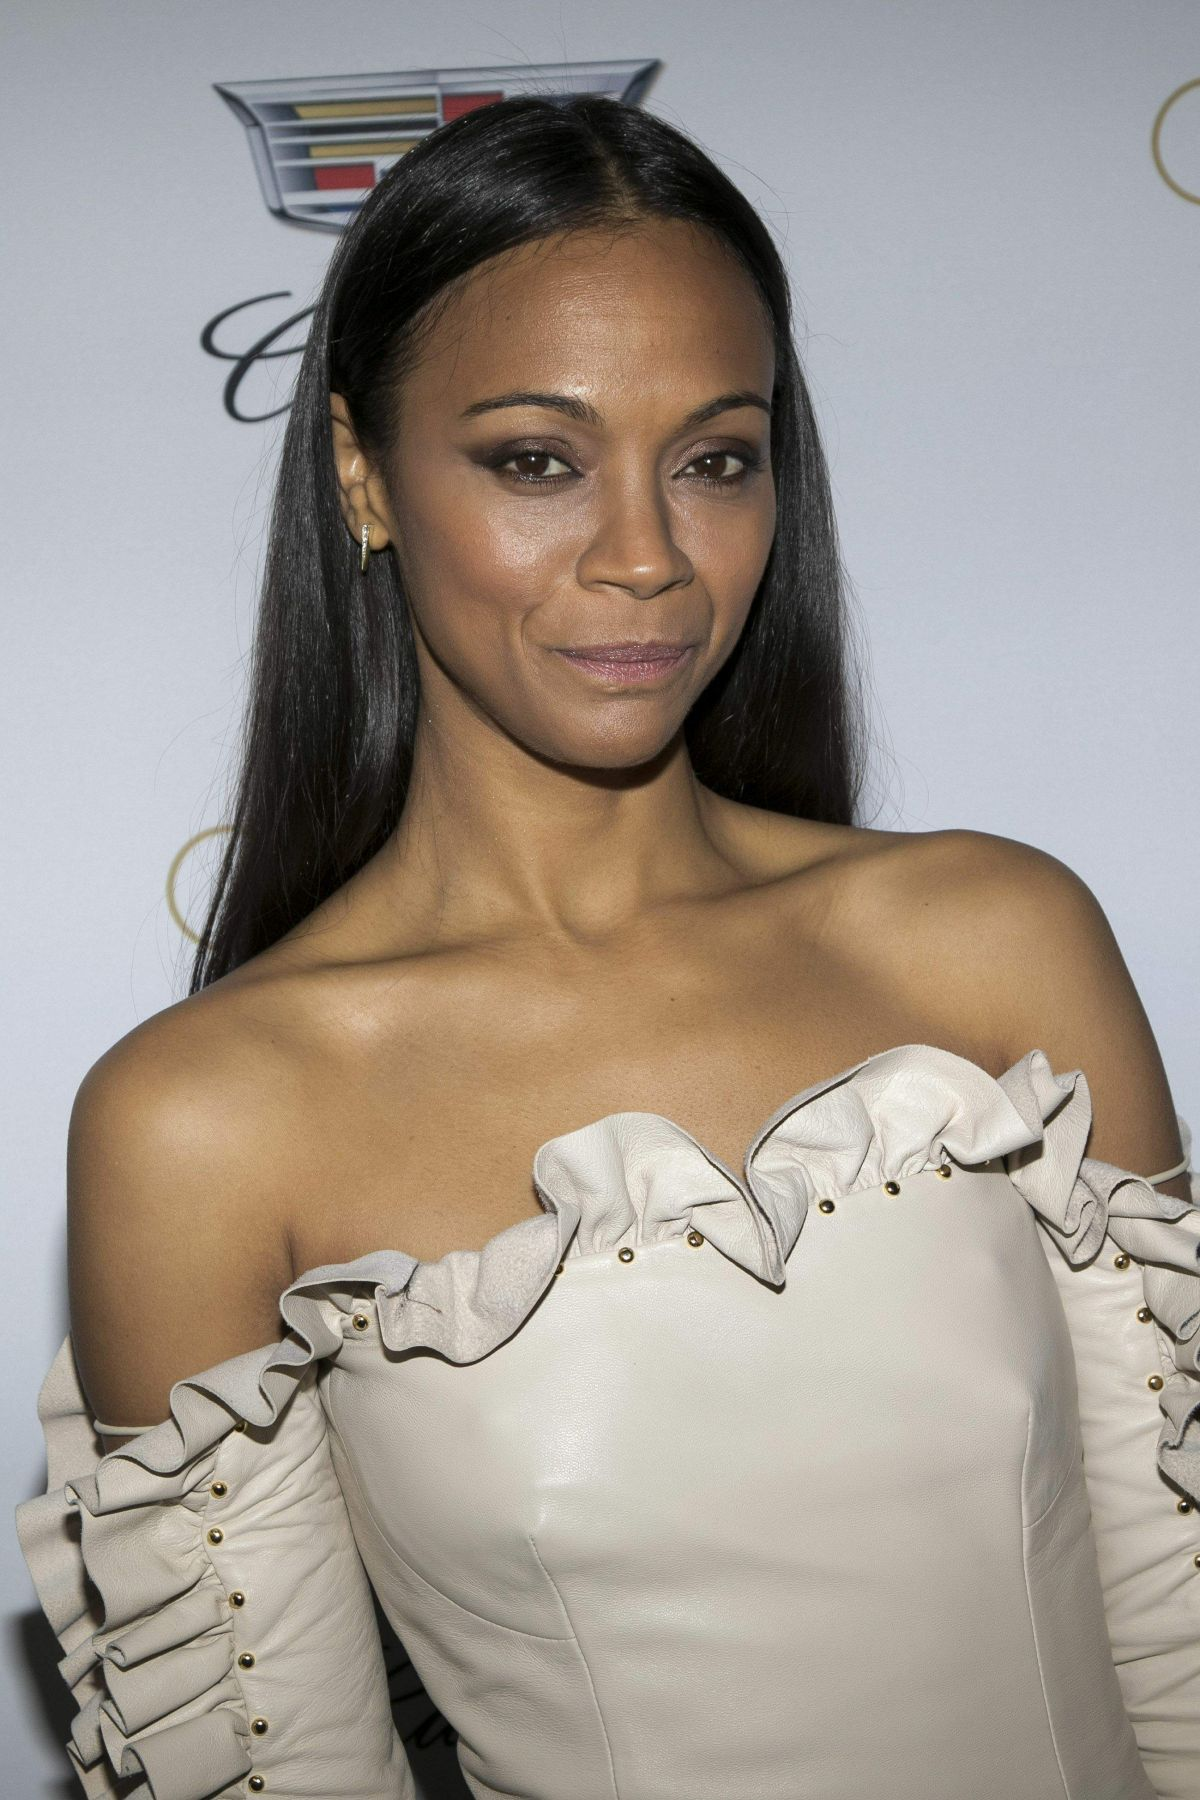 ZOE SALDANA at Cadillac's 89th Annual Academy Awards ... Zoe Saldana